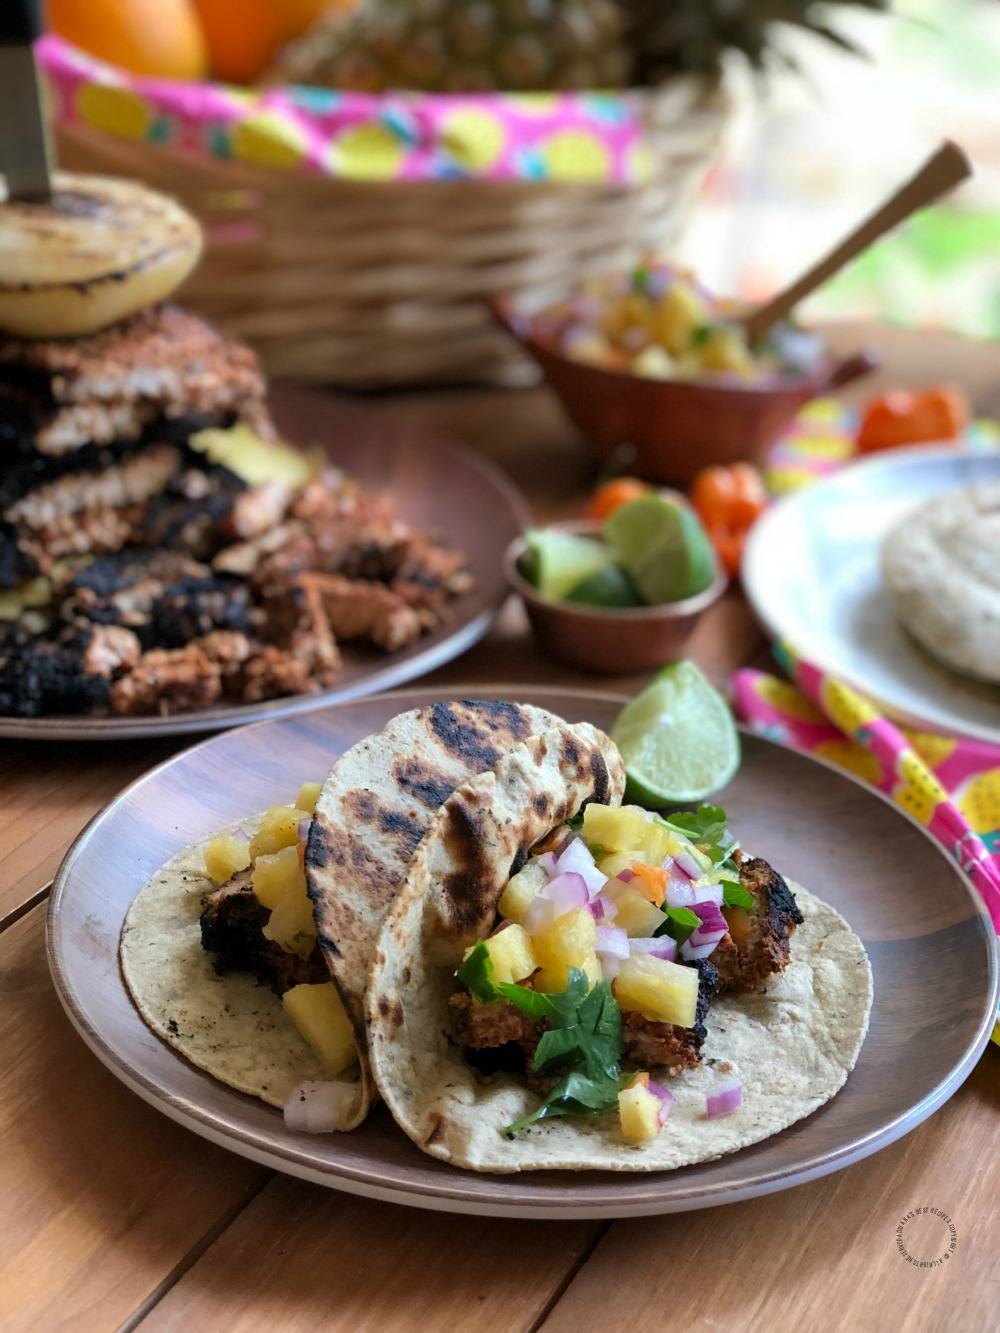 Pairing the pork tacos al pastor with habanero pineapple salsa